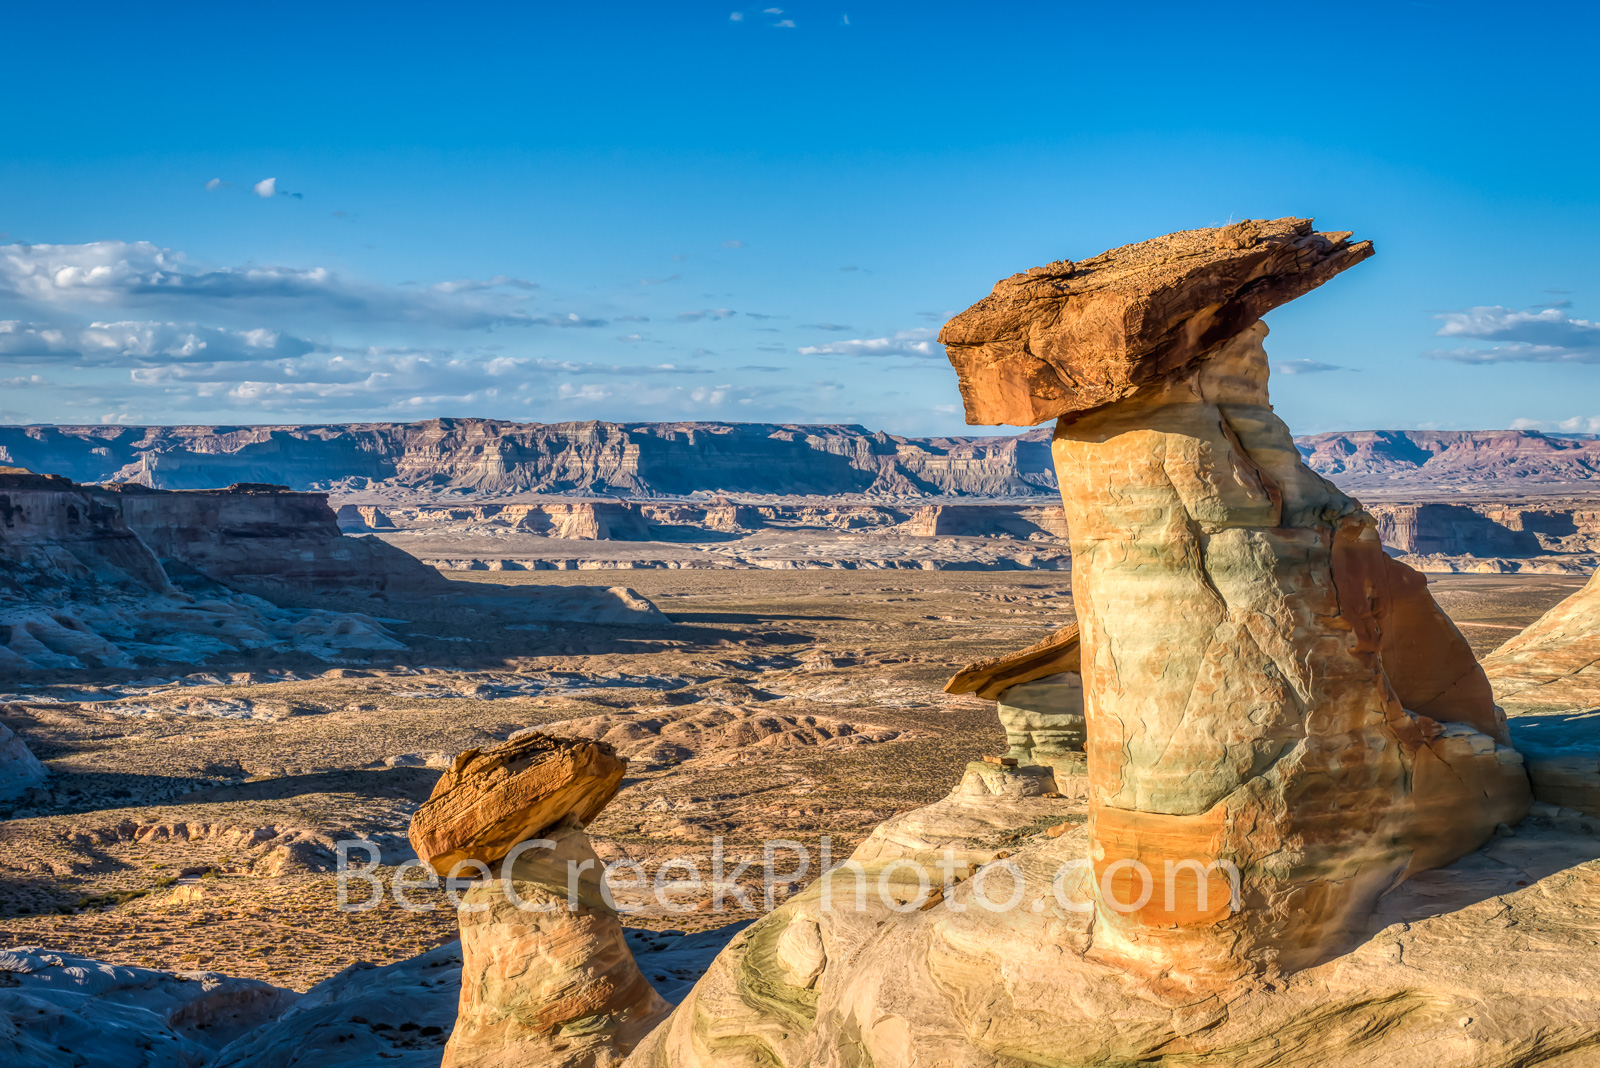 Utah Hoodoos - These hoodoos knows as Stud Horse Point which seem to be dangling over the edge over looking this valley below...